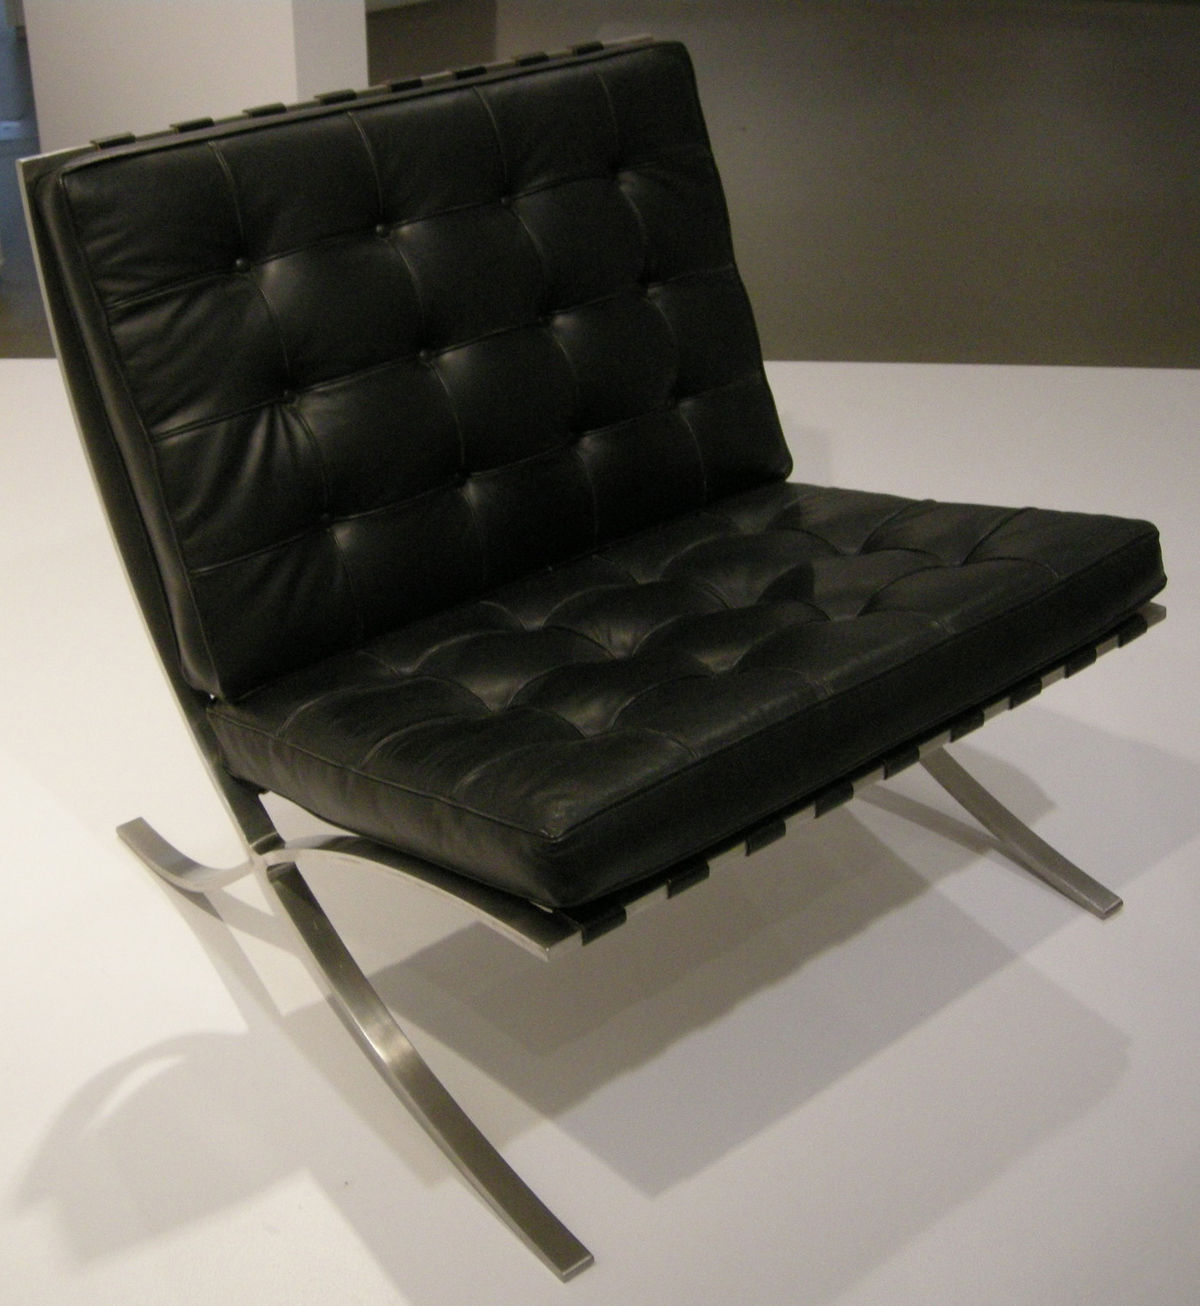 Van Der Rohe Furniture For Barcelona Chair Wikipedia